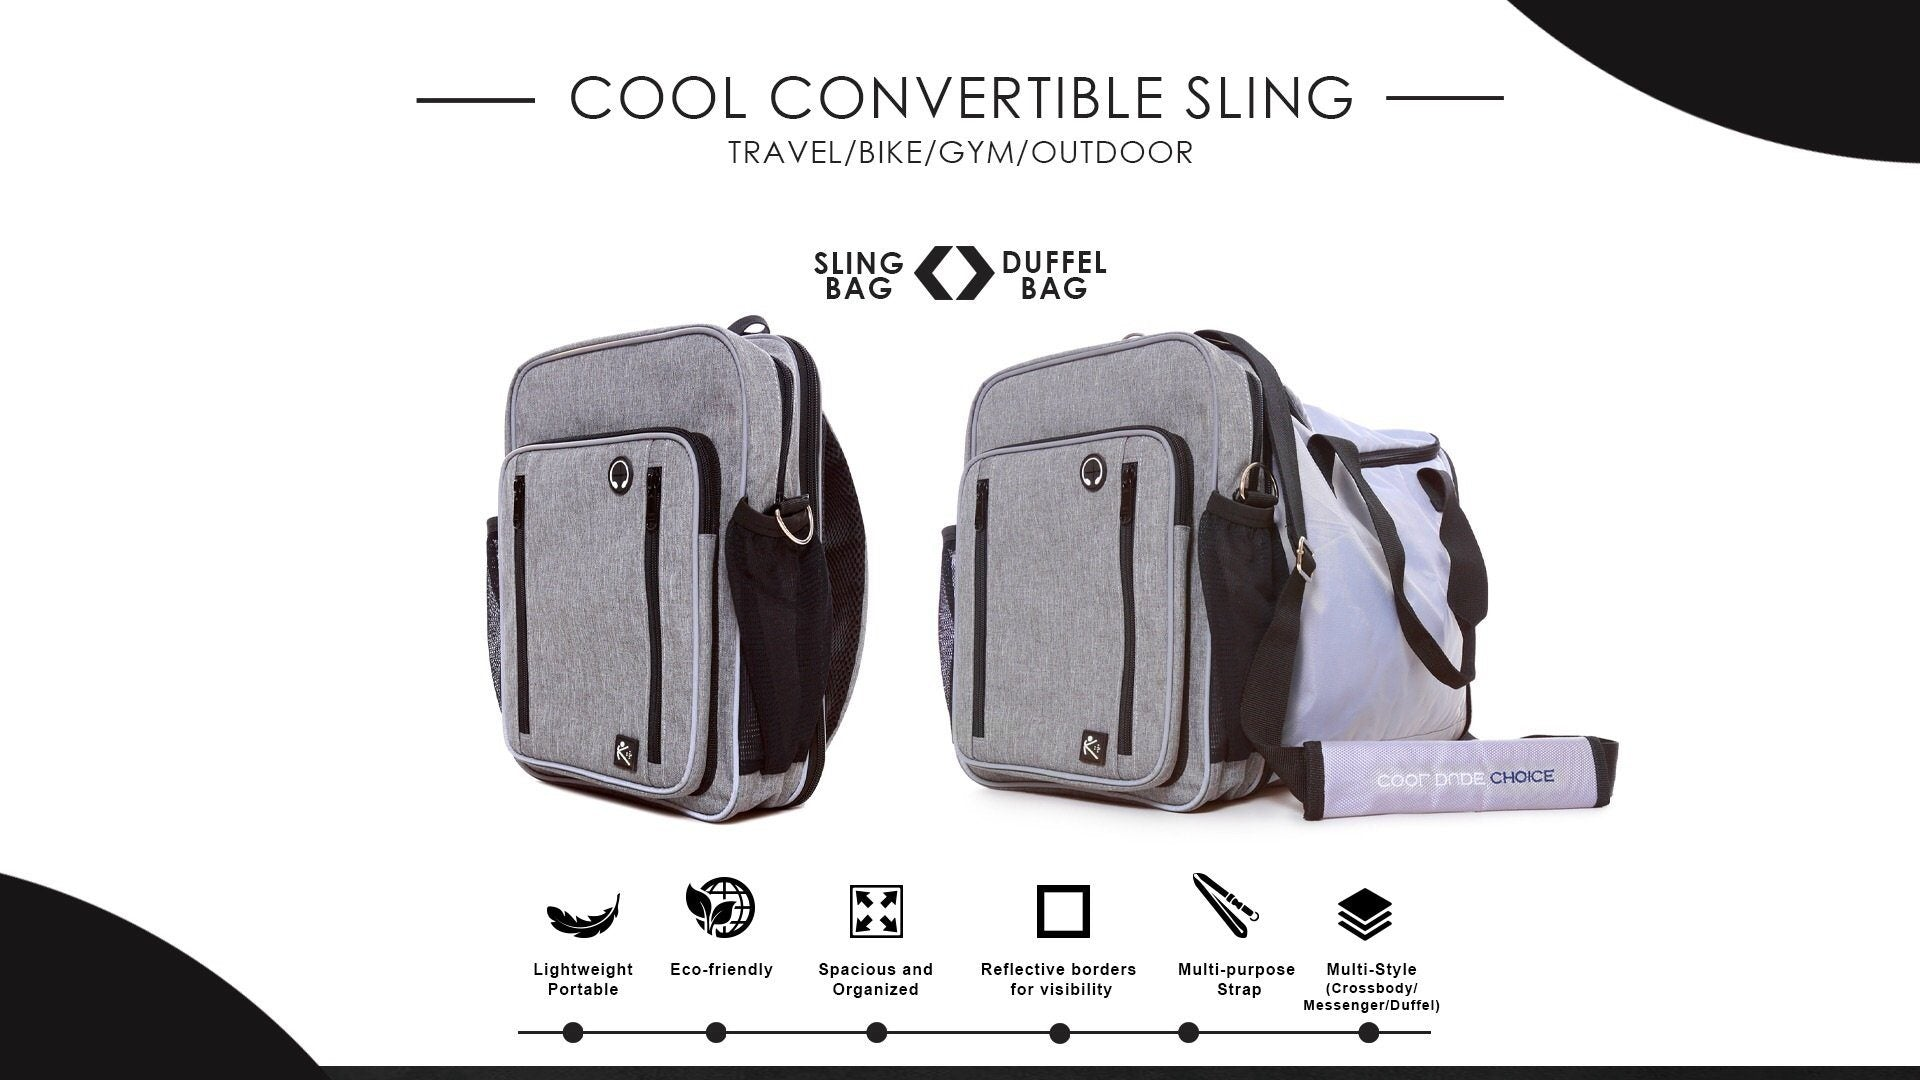 PRE-ORDER - Cool Convertible Sling Bag